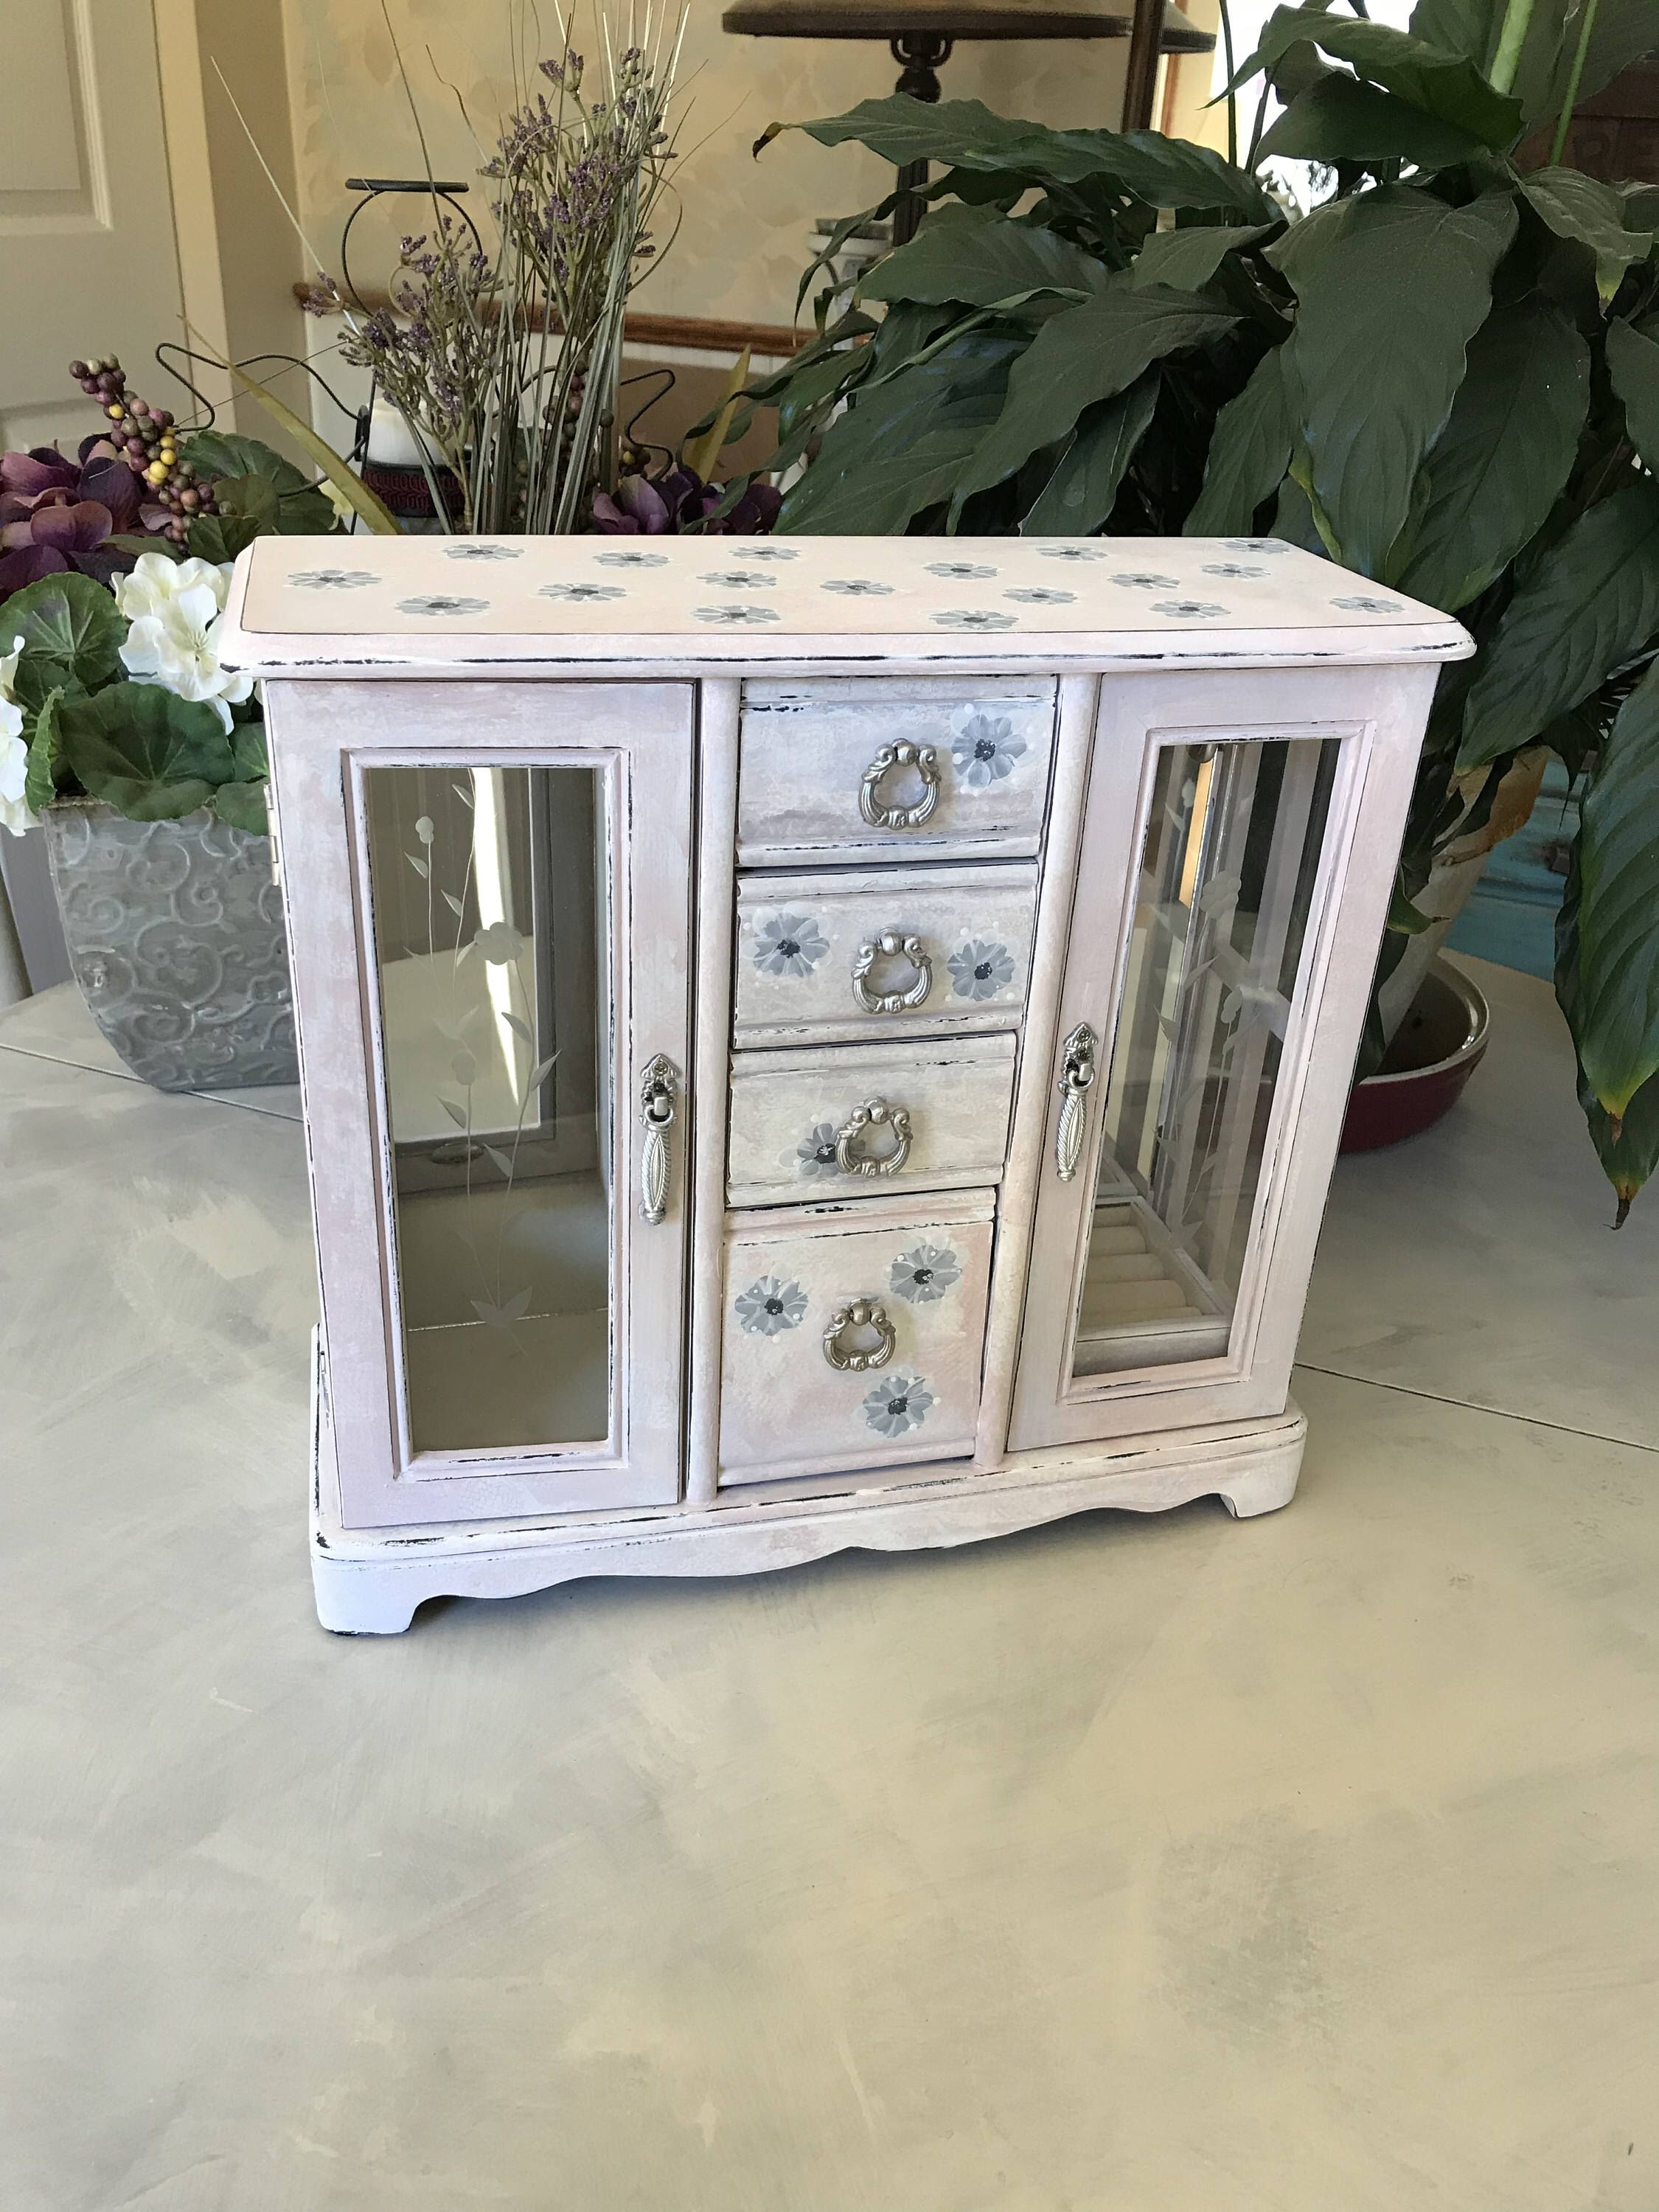 Upcycled Vintage Jewelry Box Wooden Shabby Chic Jewelry Armoire